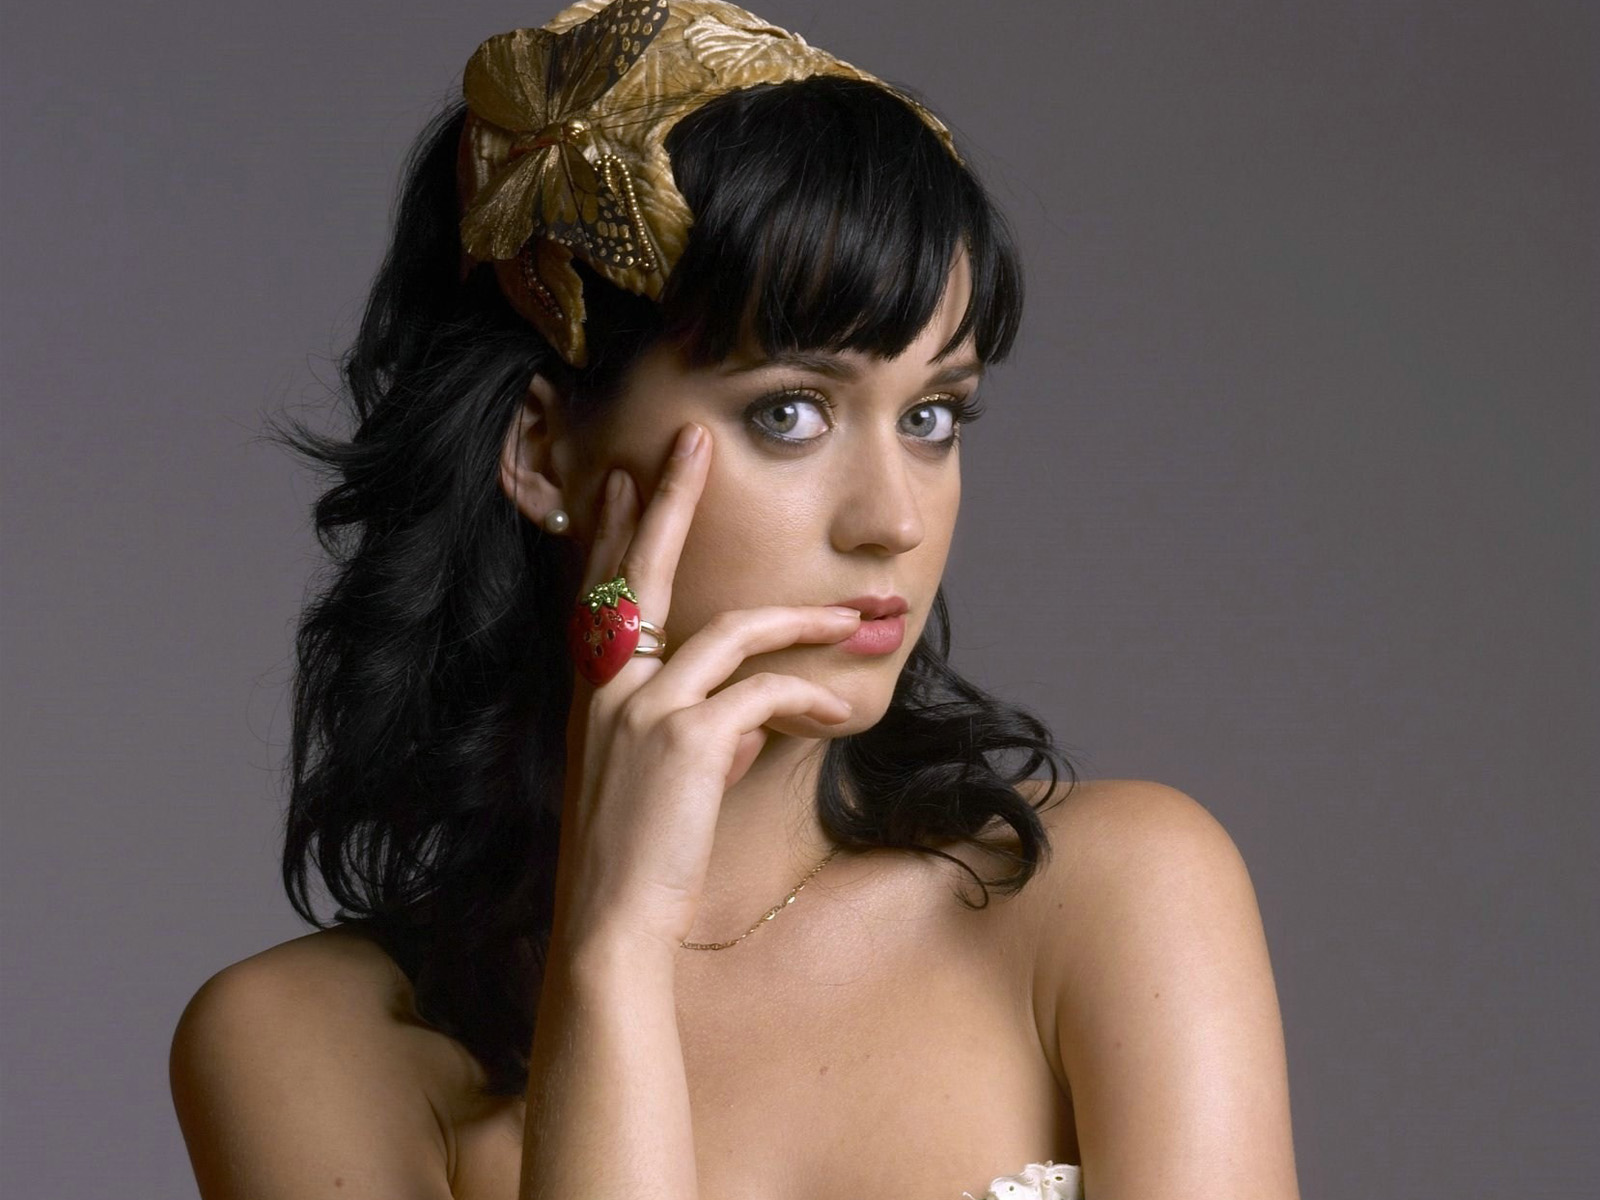 Katy Perry (14) Wallpapers | HD Wallpapers Wallpaper